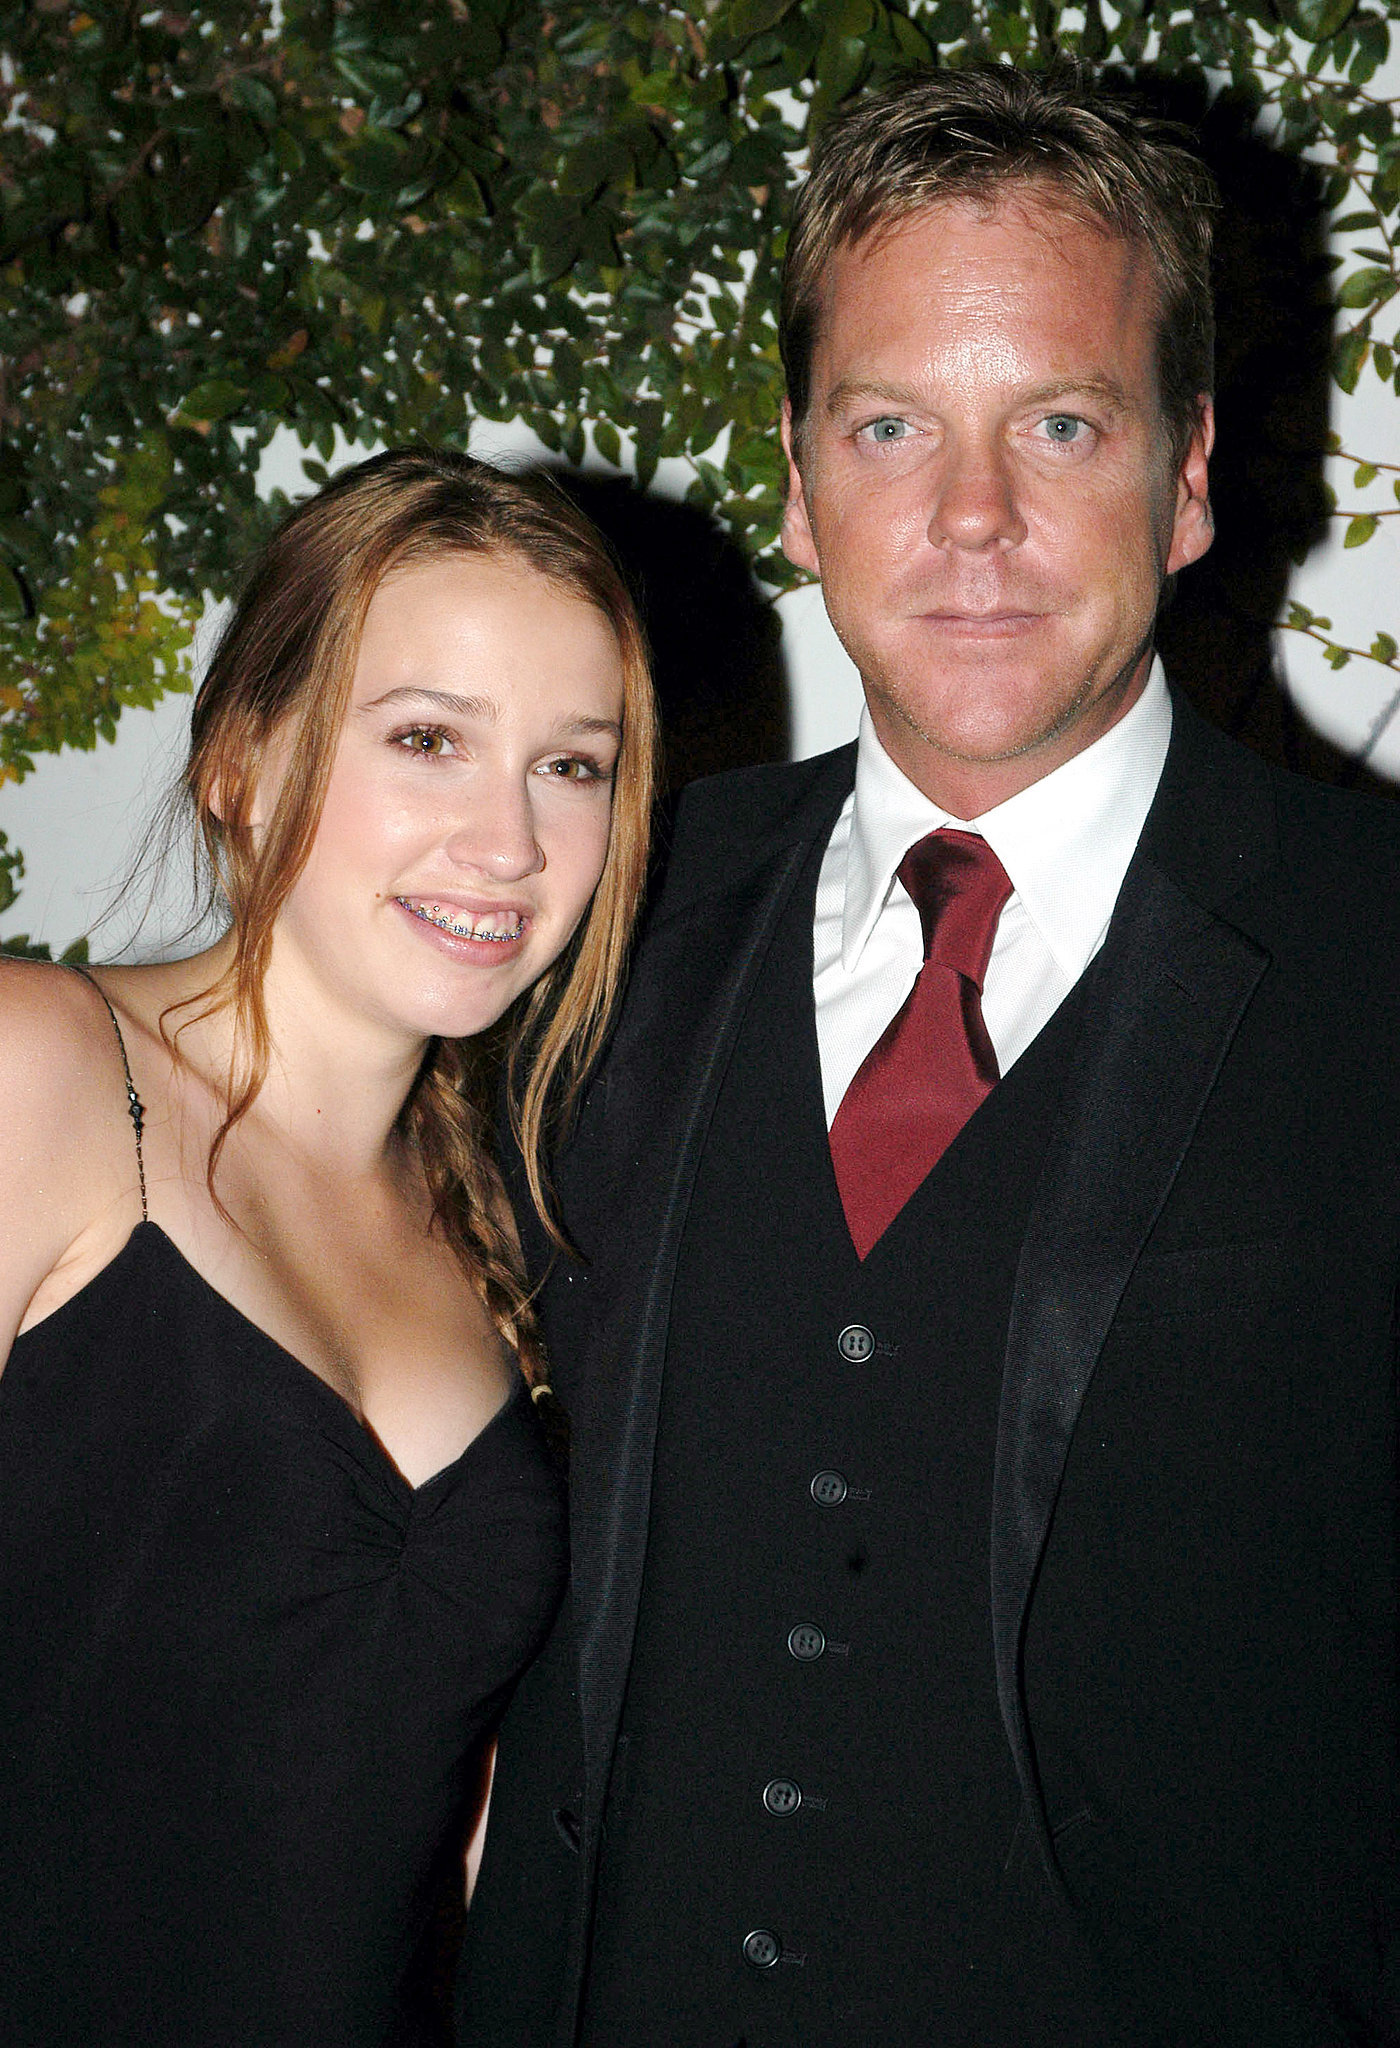 Kiefer Sutherland! The last name may give it away, but considering this is one of Sarah's first roles, her parentage hasn't come up much yet.